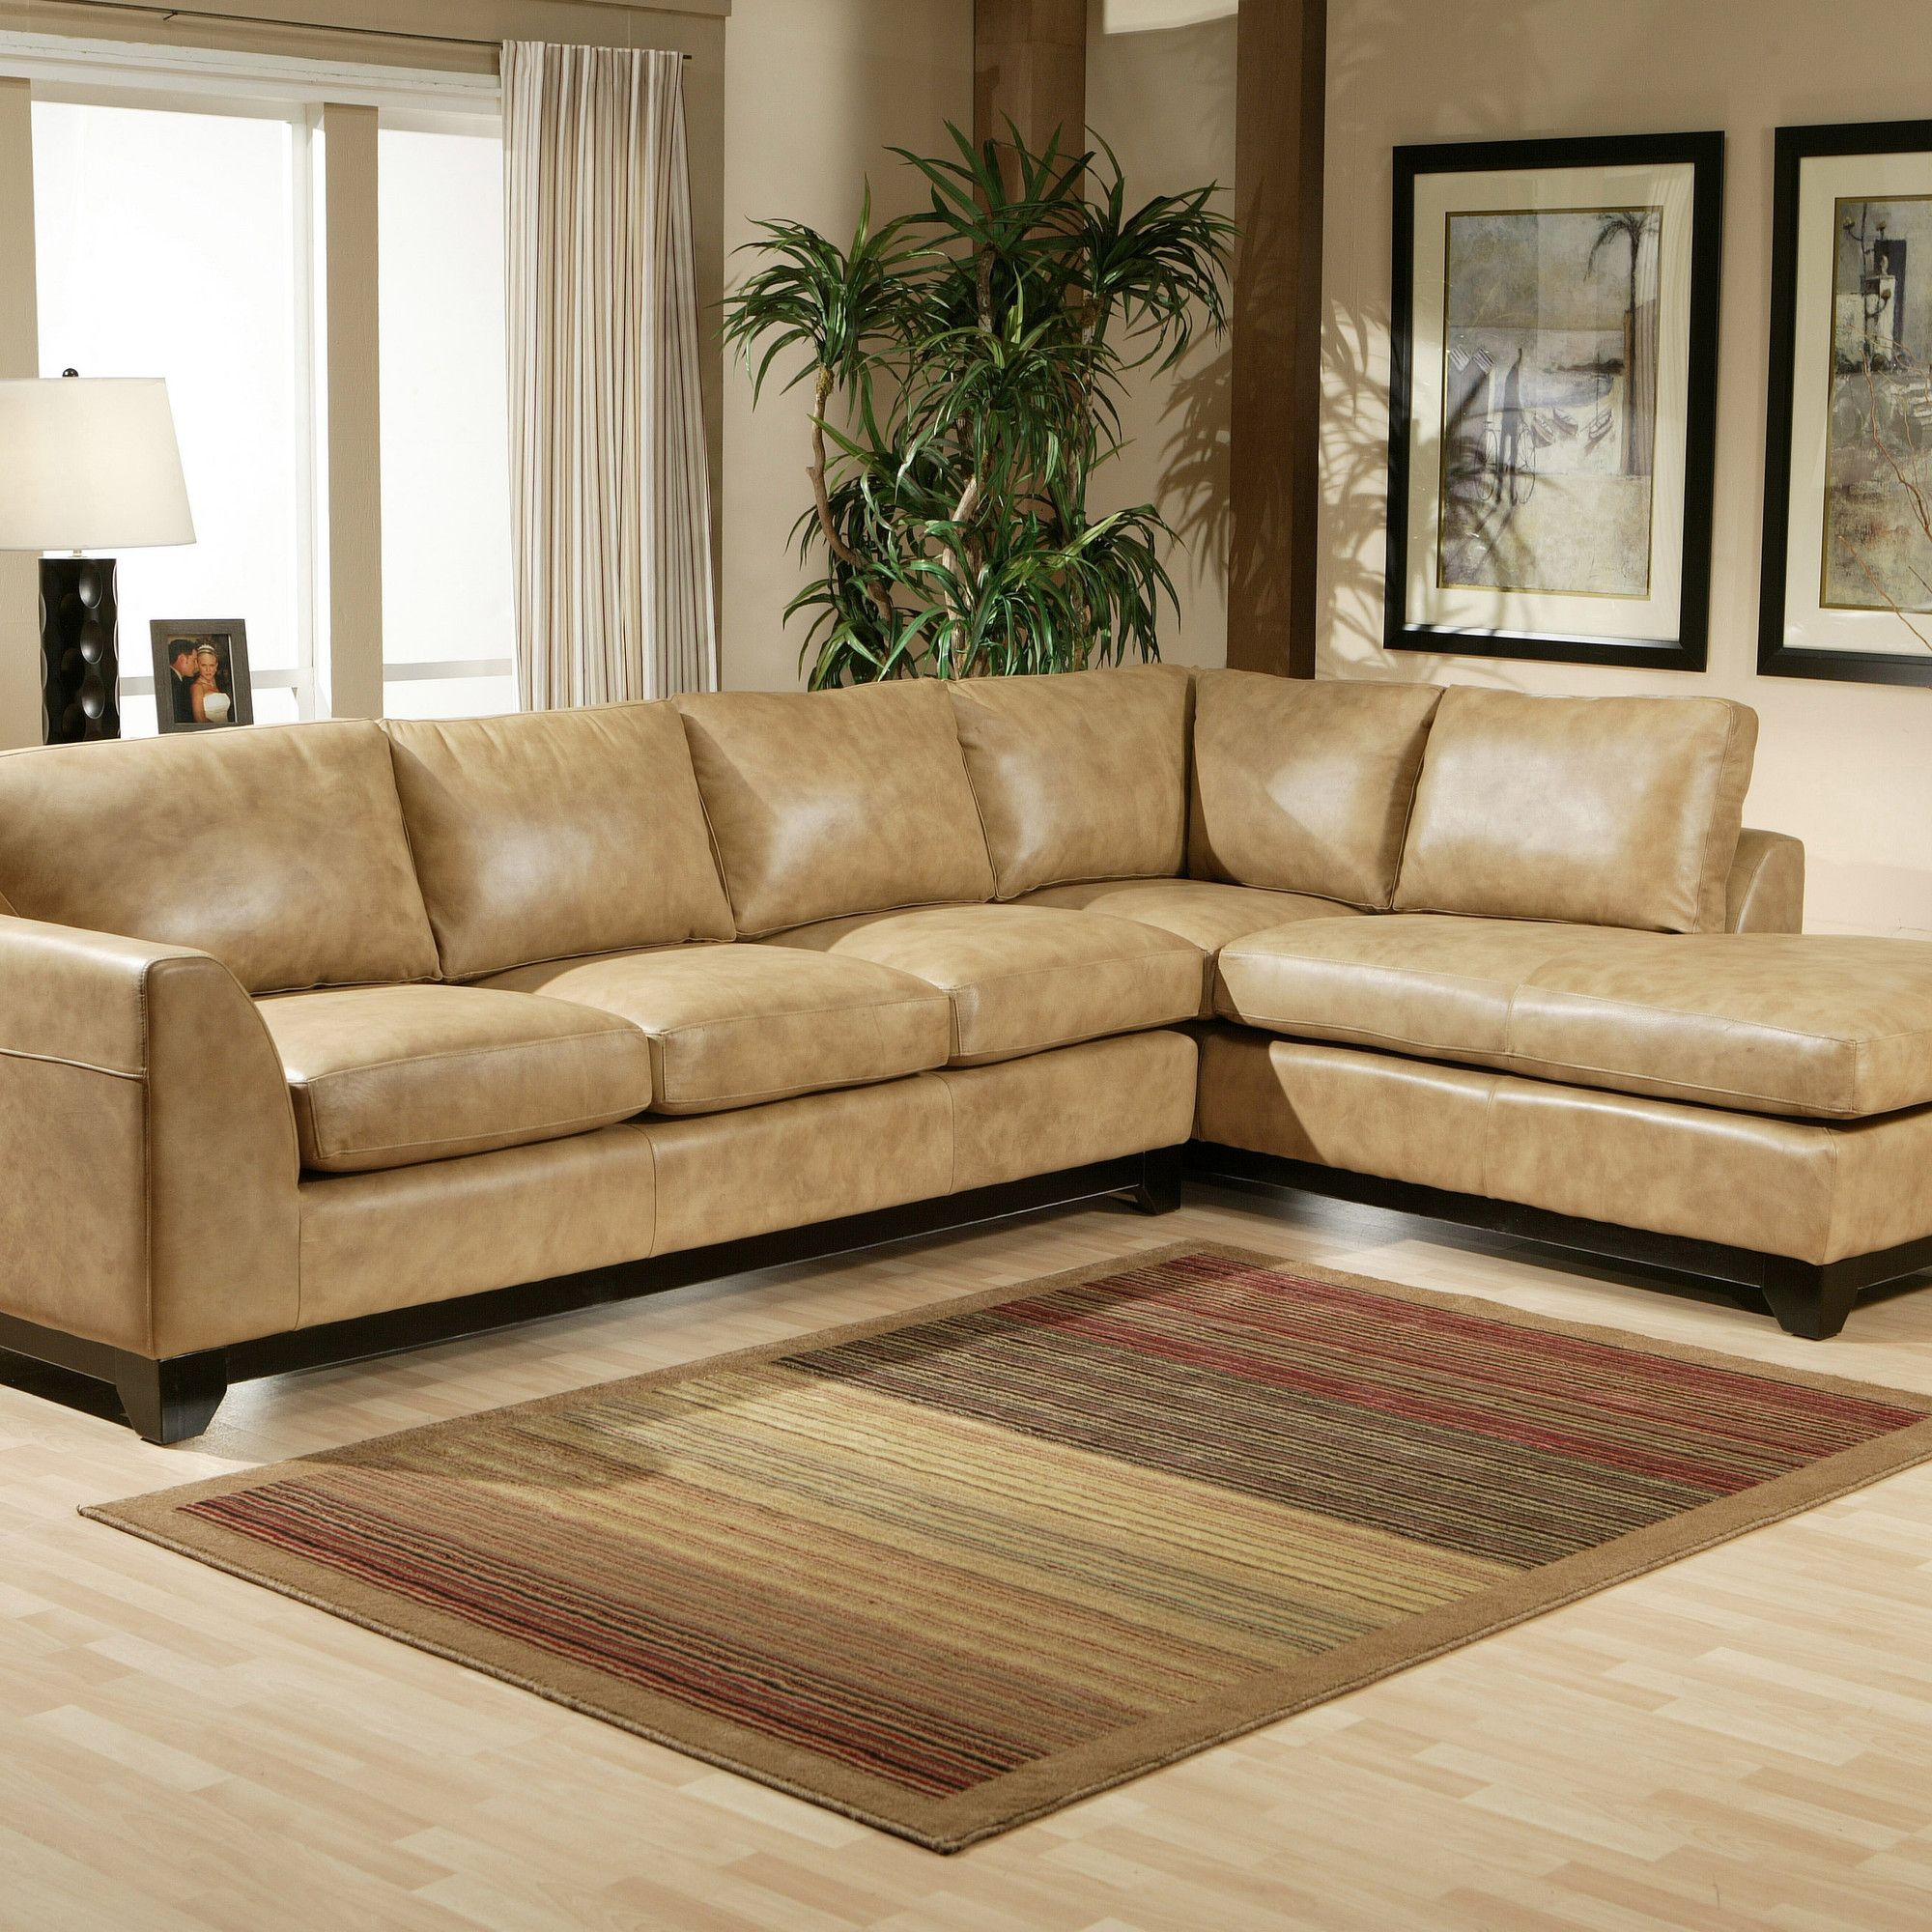 Omnia Furniture City Sleek Leather Sectional Leather Living Room Set City Furniture Living Room Sets